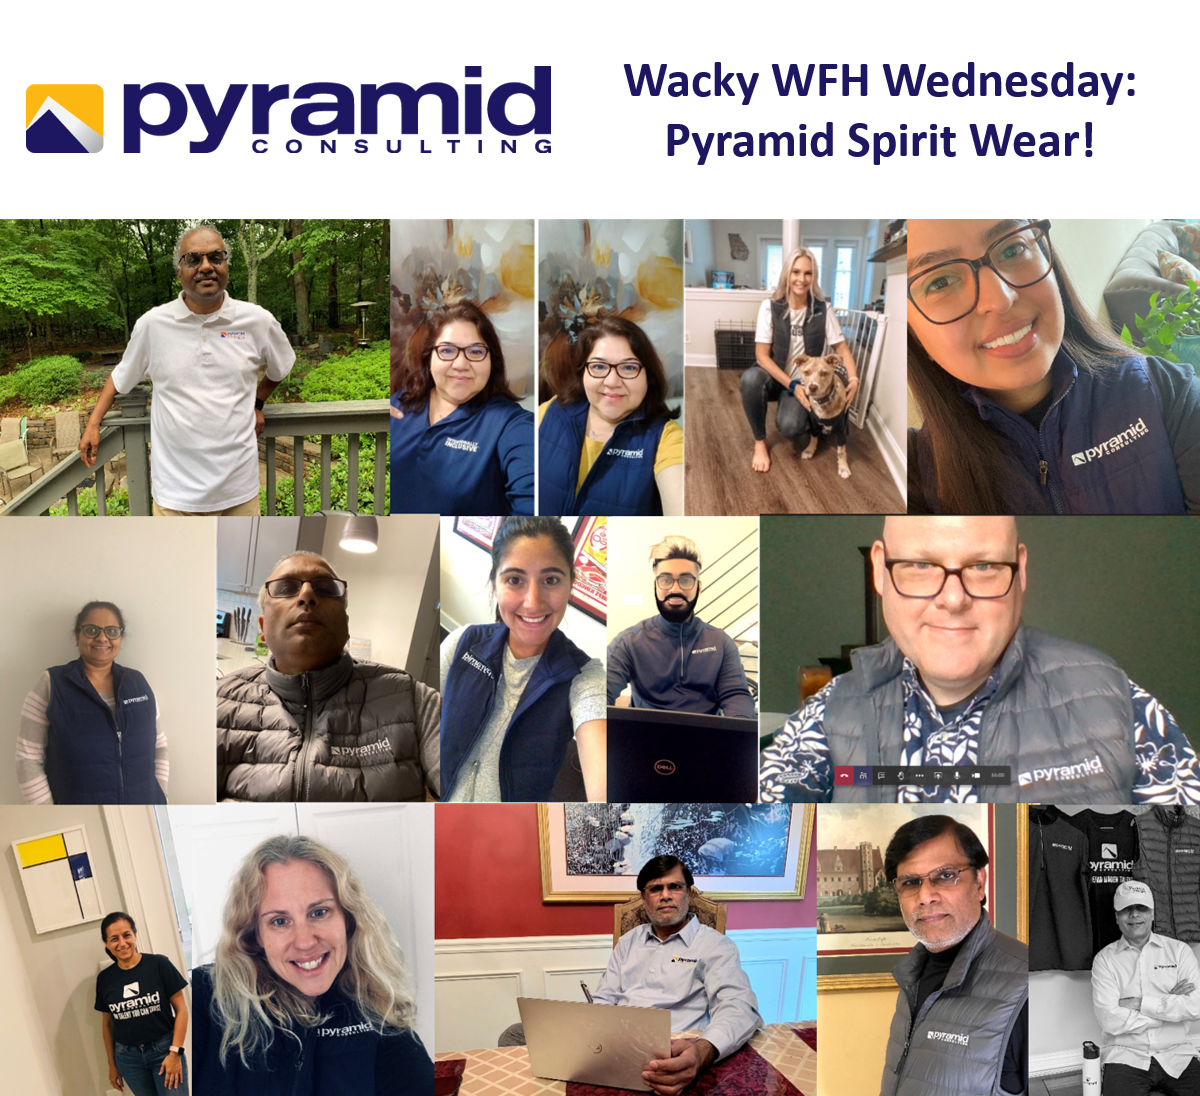 Wacky WFH Wednesday: Pyramid Spirit Wear